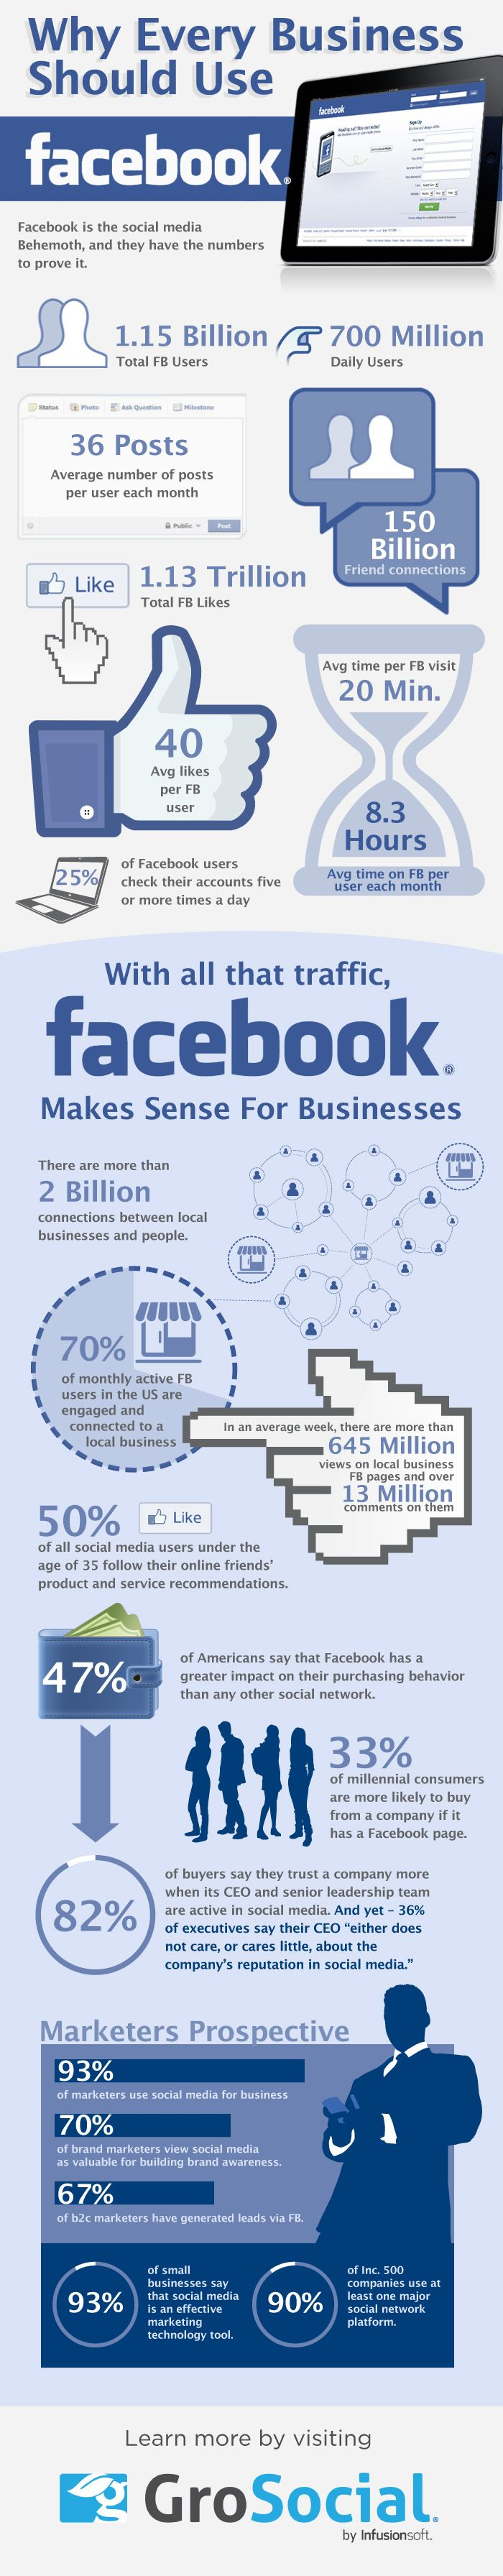 Facebook Numbers and Usage Stats-Every Business Needs Facebook #Infographic #Marketing #SMM